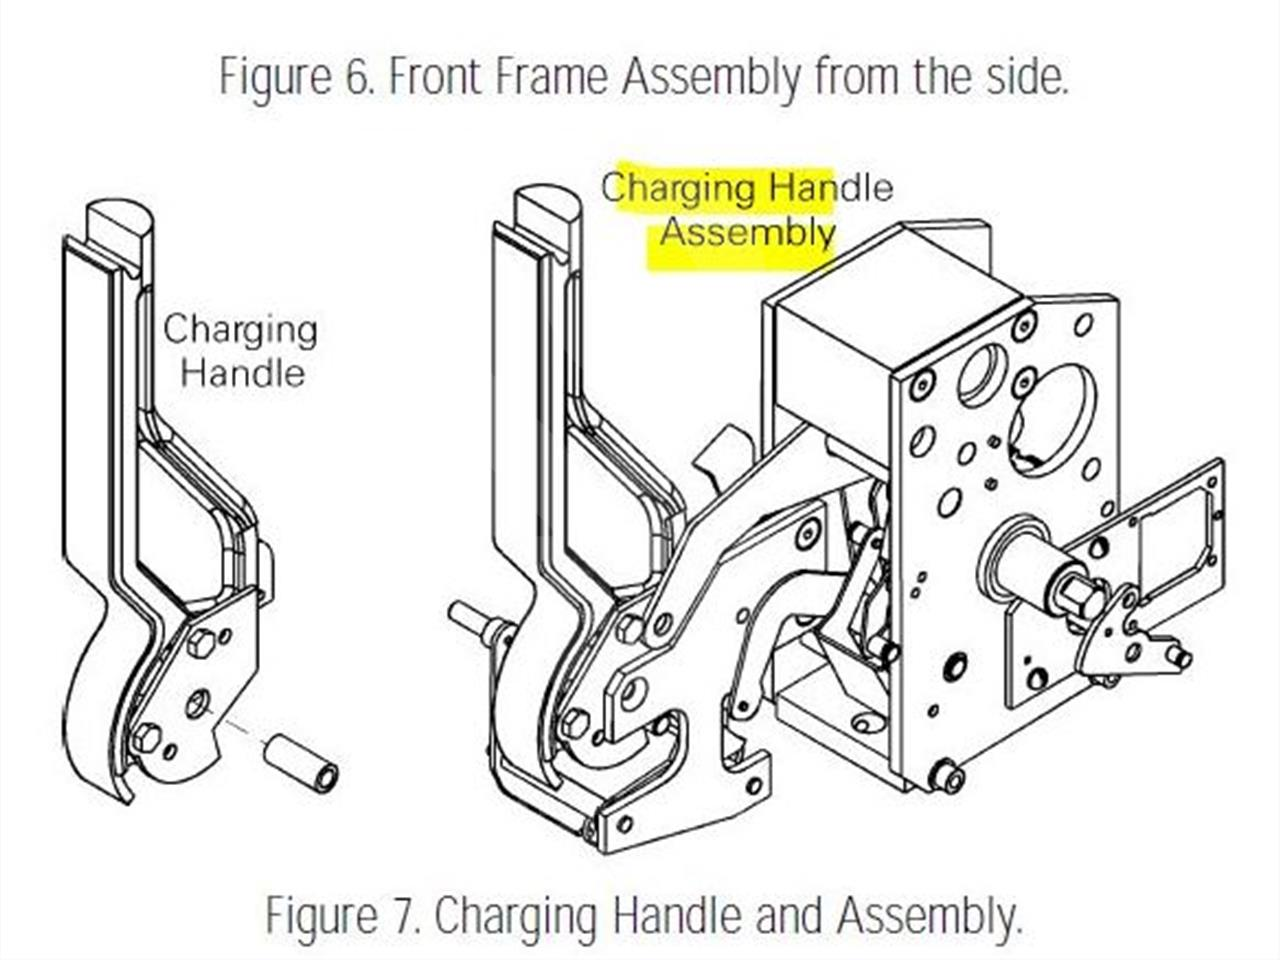 General Electric Ge Manual Charge Handle Assembly